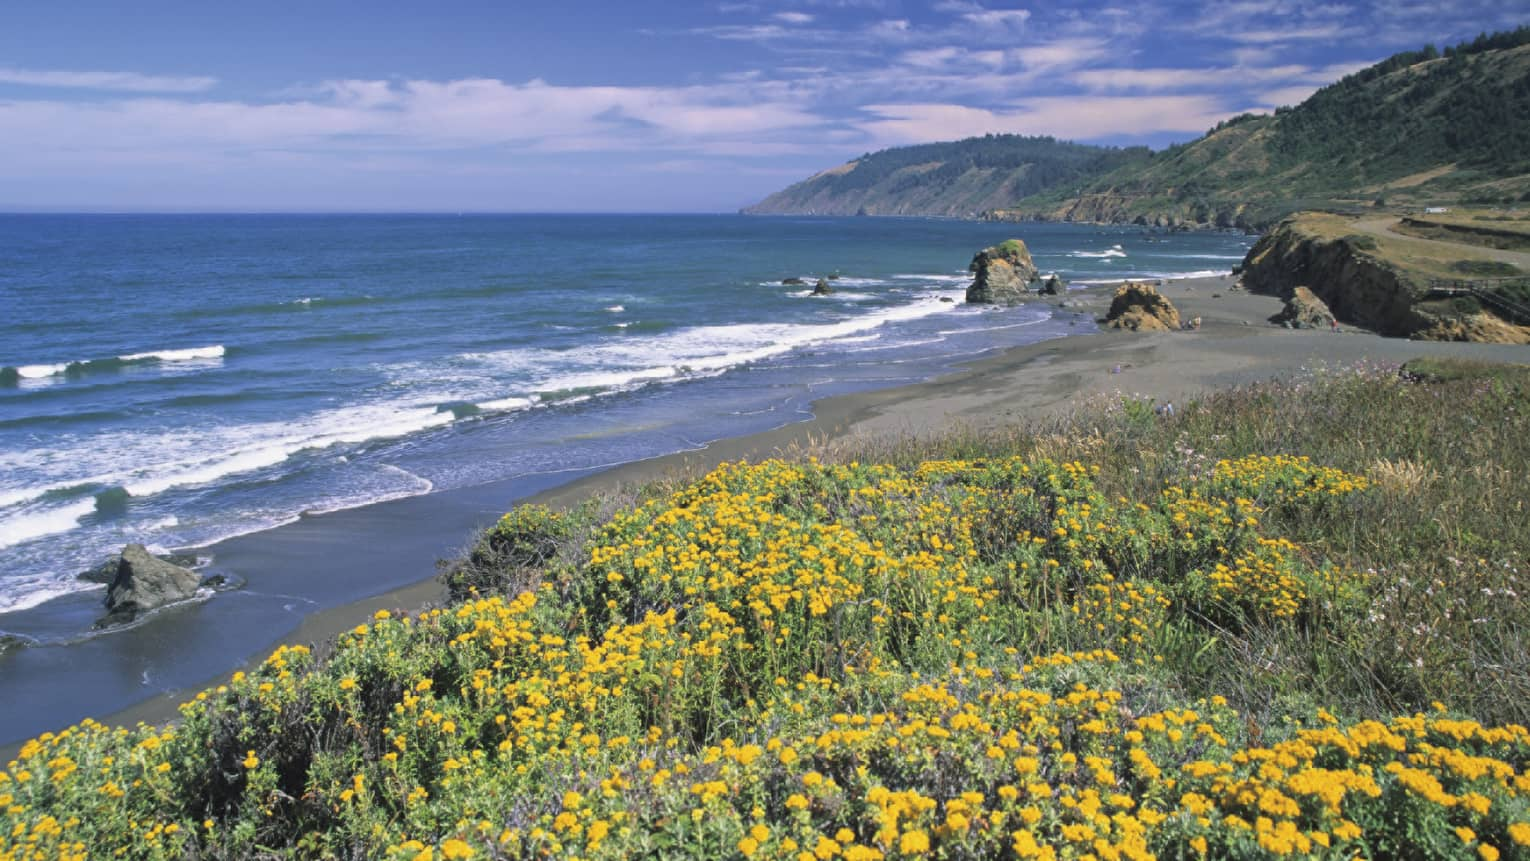 Yellow flowers along California coast, big rocks and waves